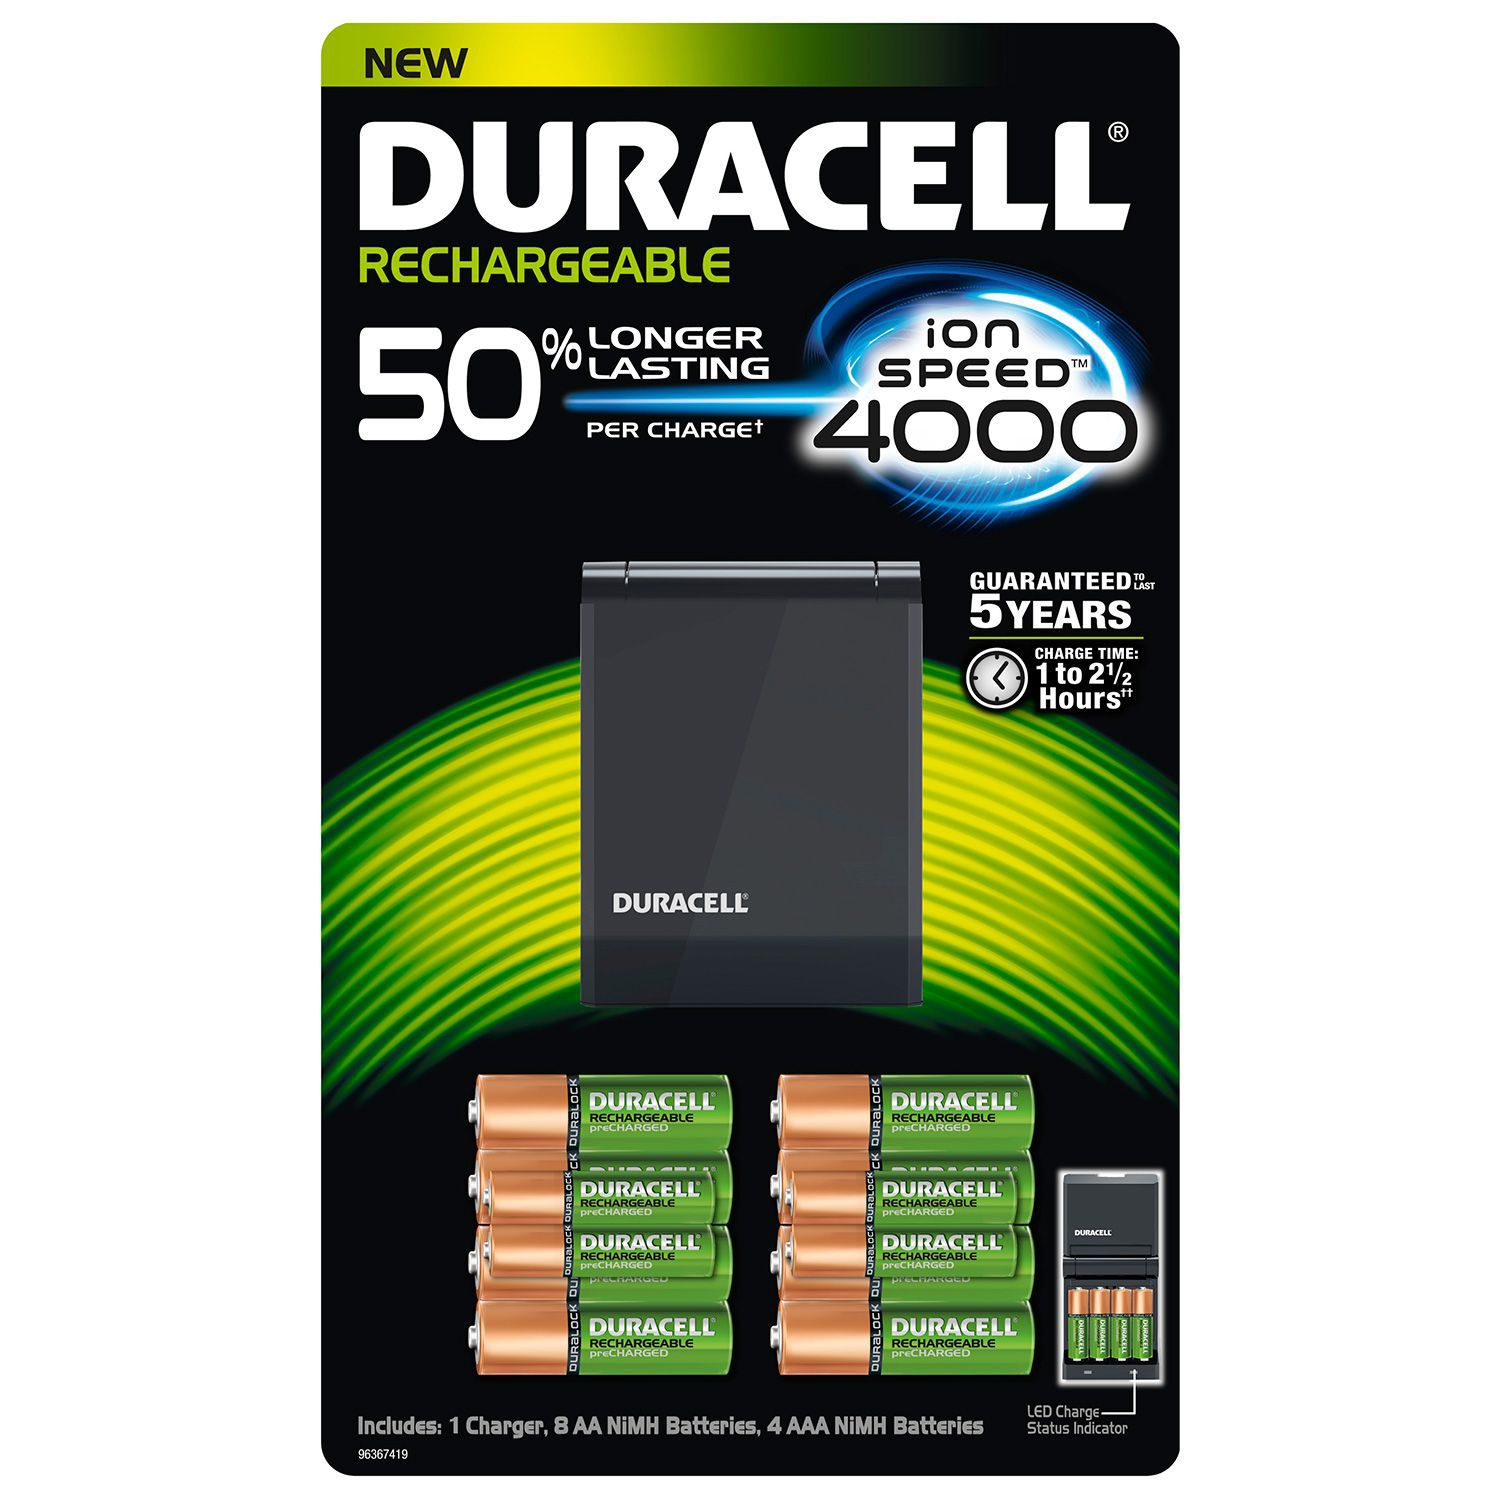 Duracell rechargeable battery charger not working